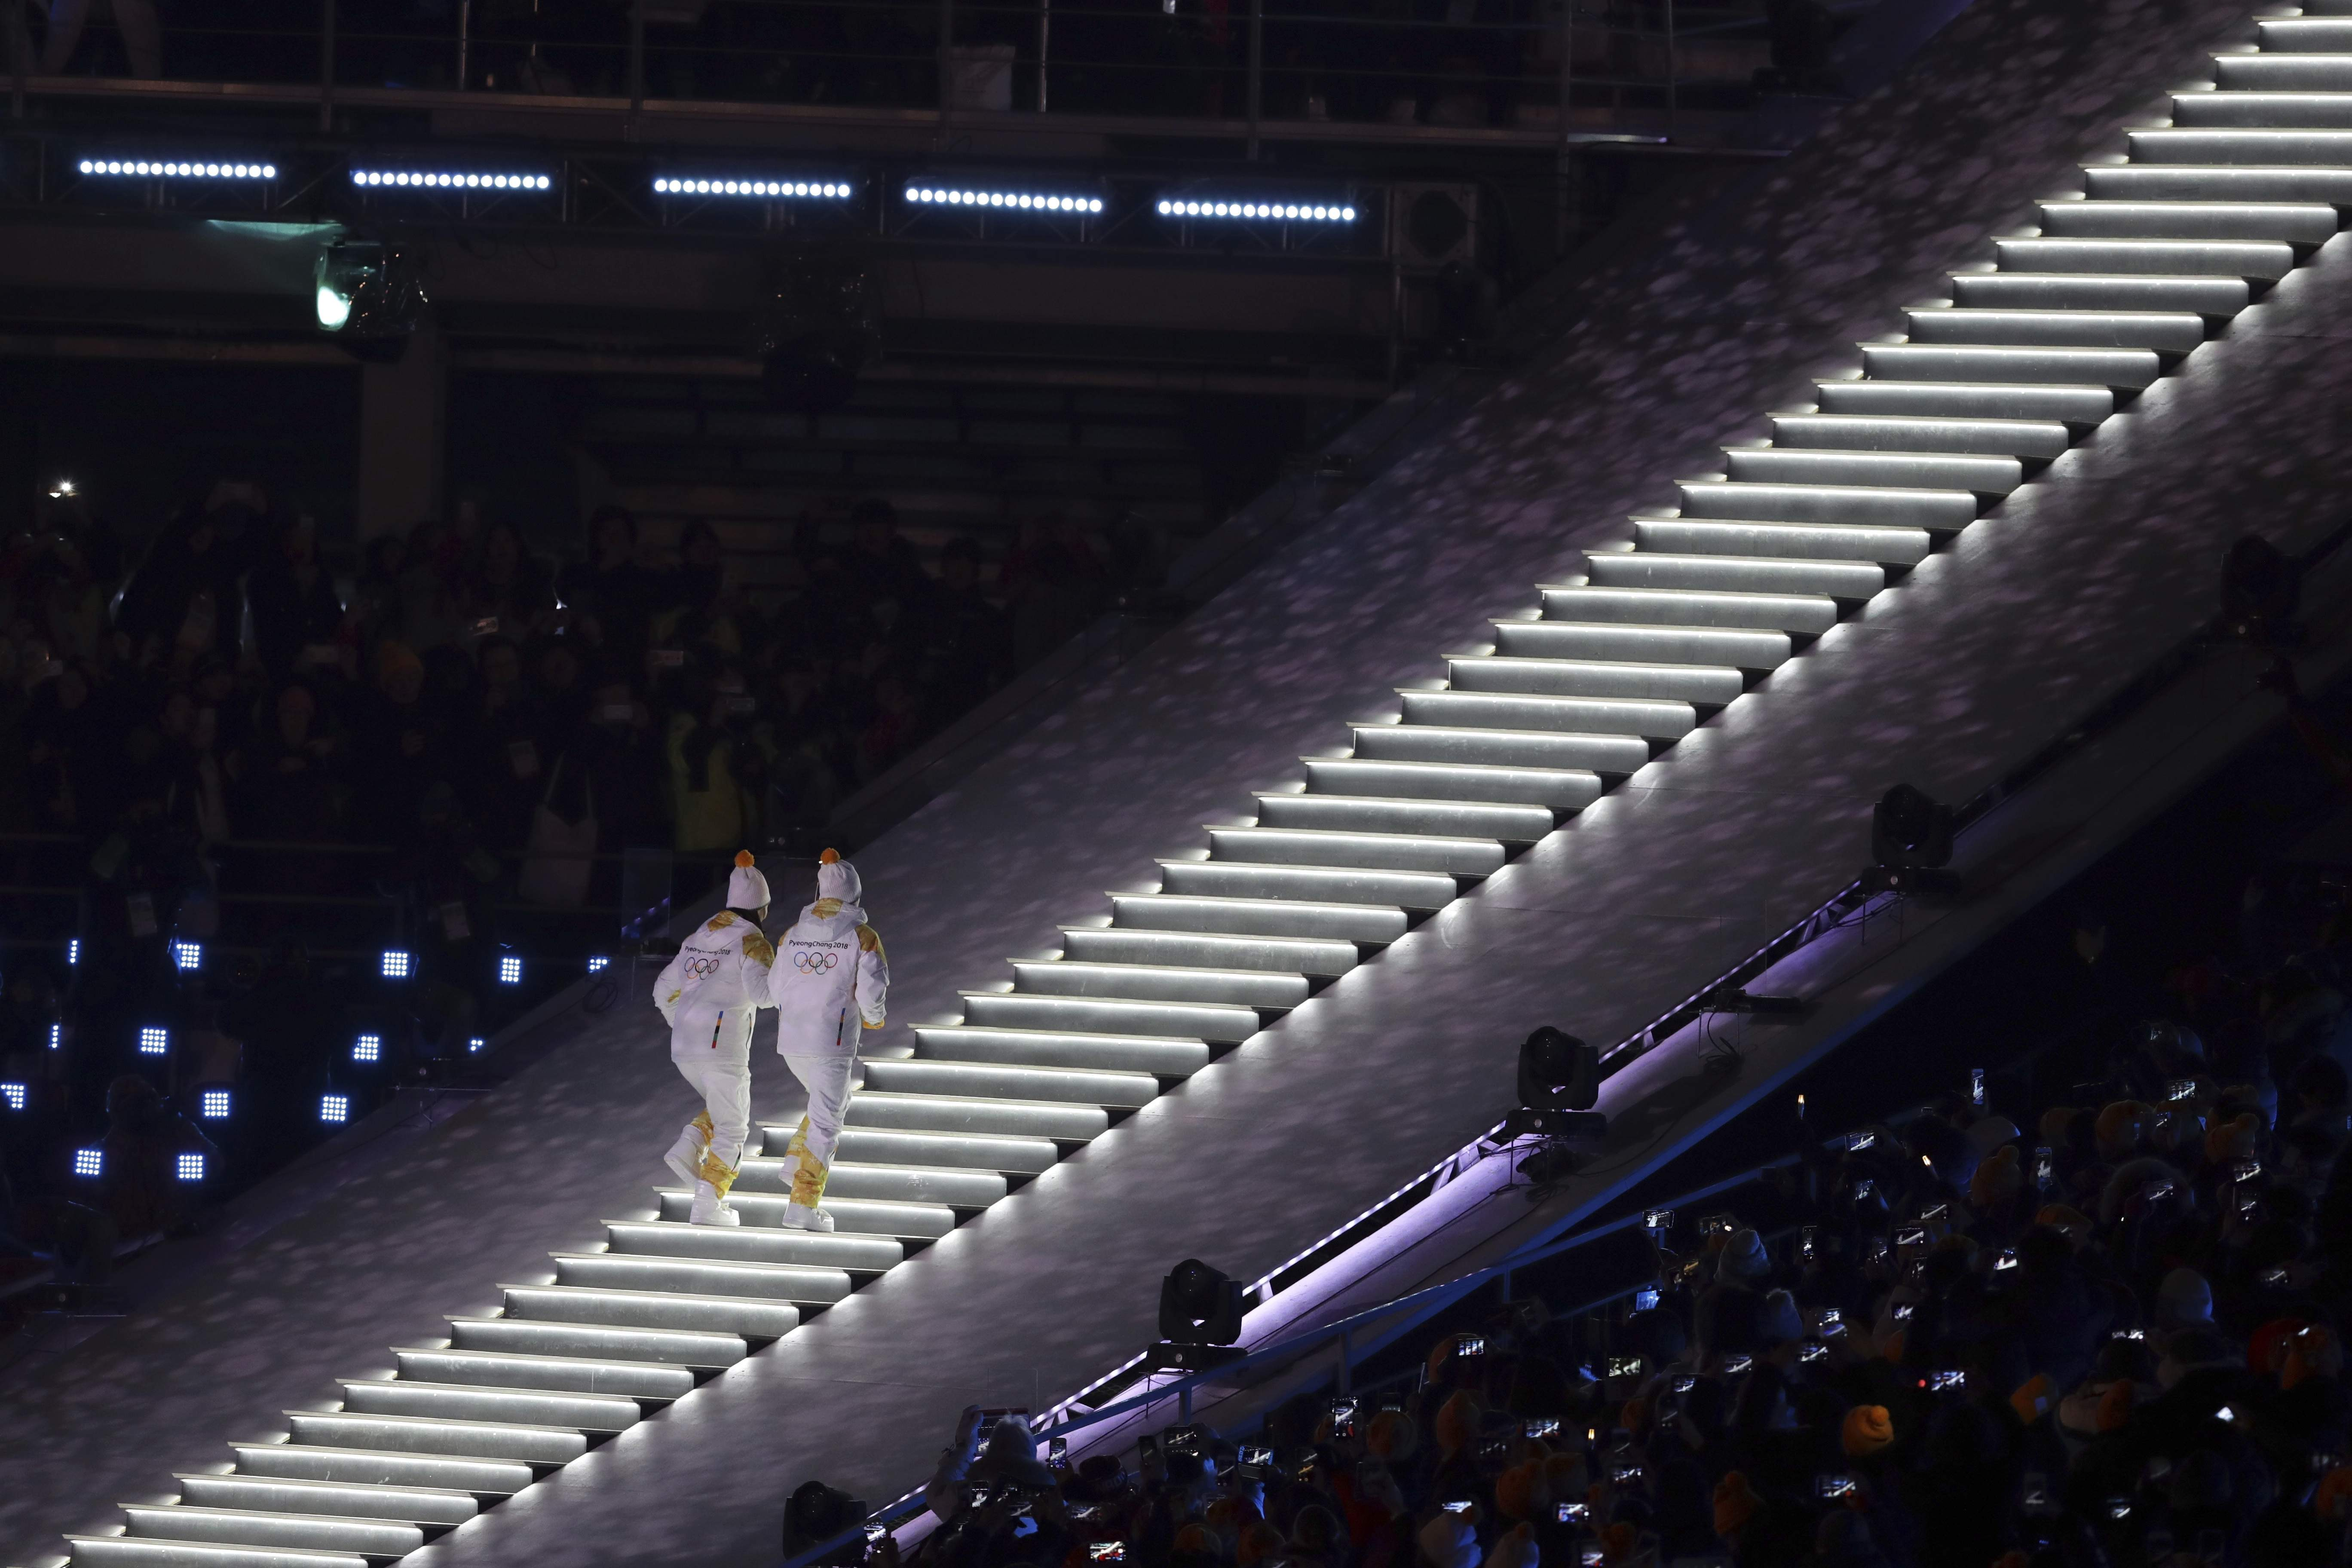 North Korea's Jong Su Hyon and South Korea's Park Jong-ah carry the Olympic torch is carried during the opening ceremony of the 2018 Winter Olympics in Pyeongchang, South Korea, Friday, Feb. 9, 2018. (AP Photo/Michael Sohn)